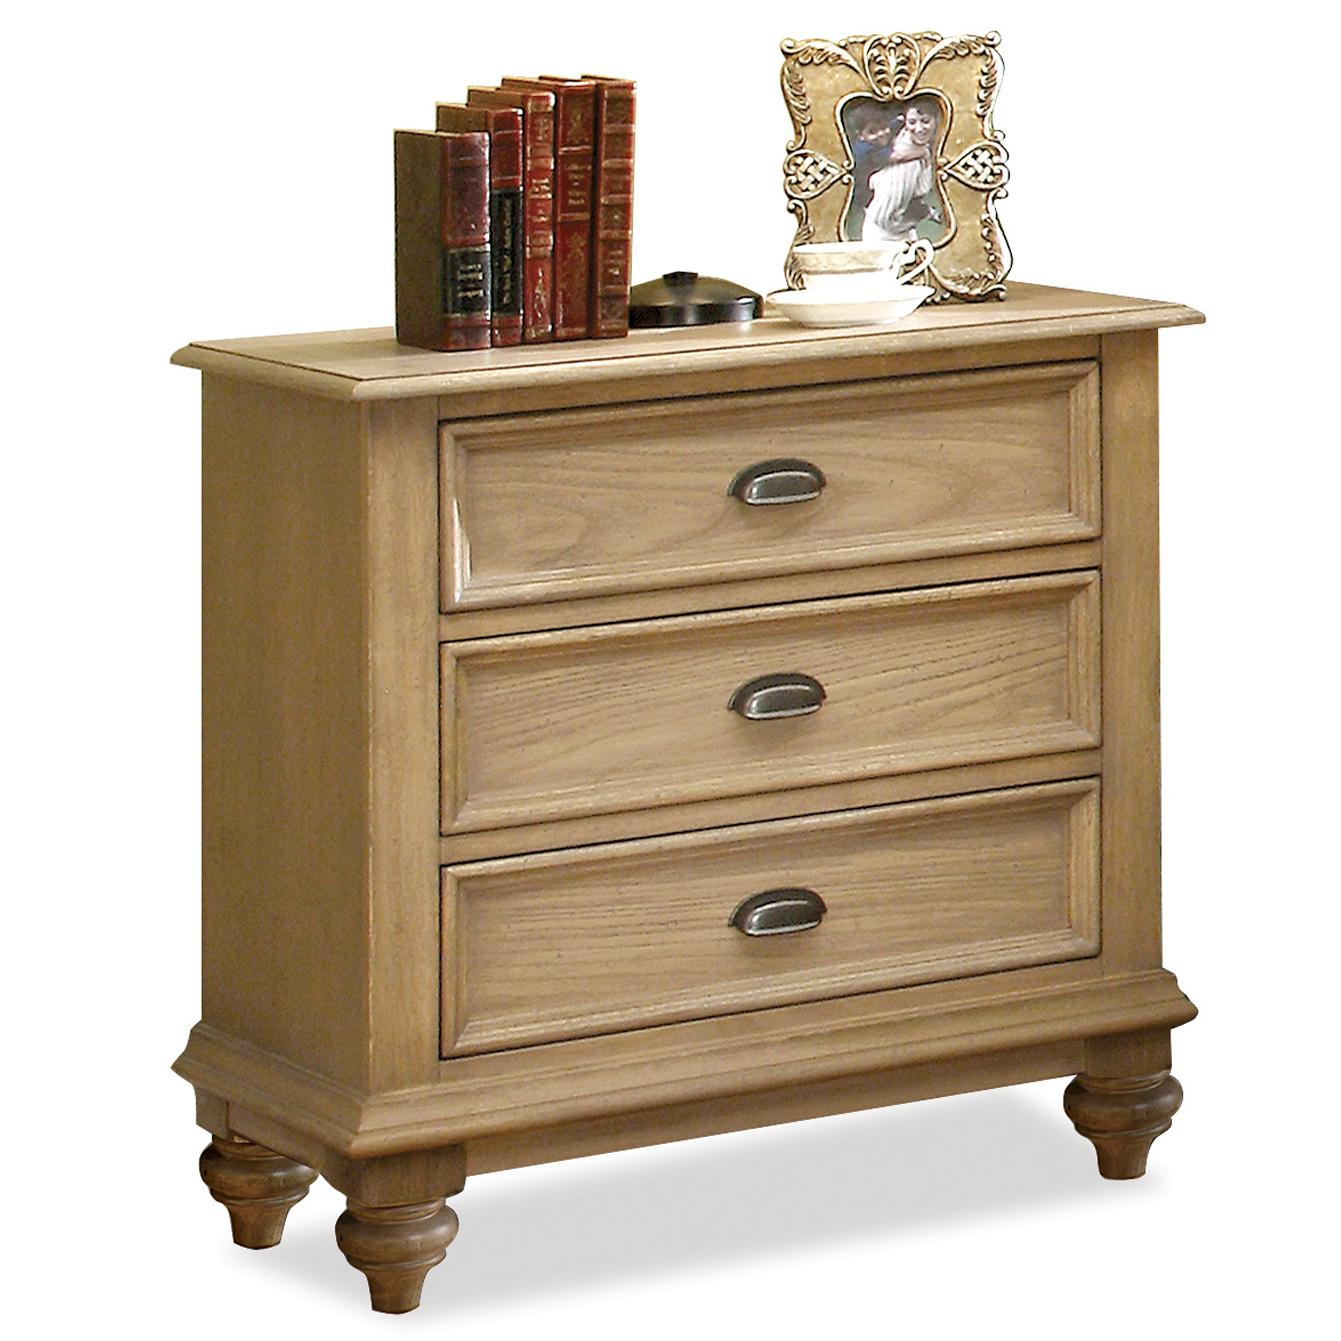 Riverside Furniture Coventry 3-Drawer Night Stand - Item Number: 32468